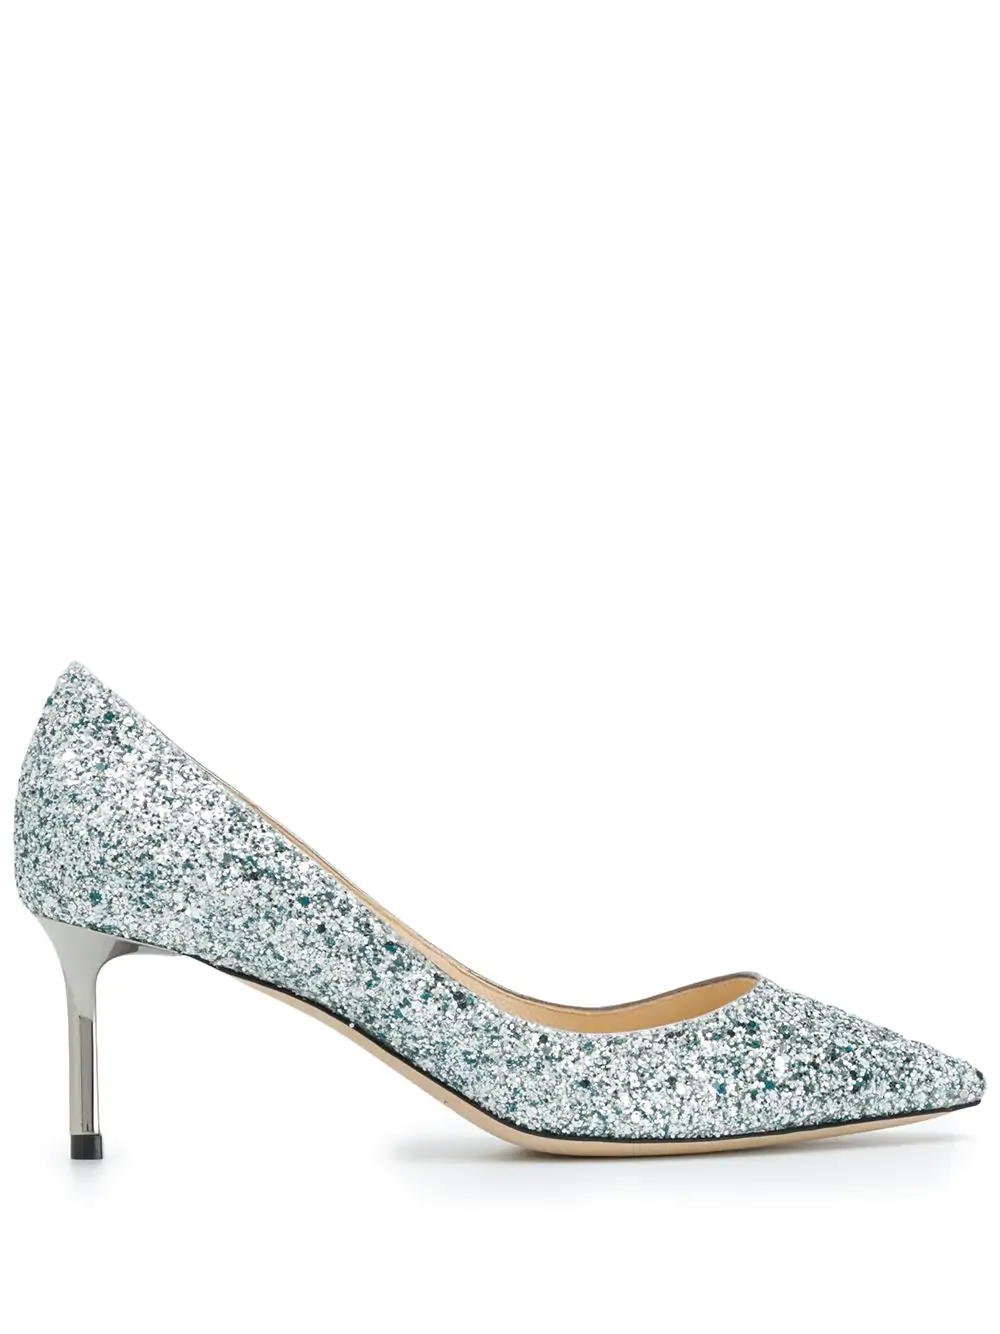 973fb45210da Jimmy Choo Romy 60 Viola Mix Speckled Glitter Pointy Toe Pumps In ...